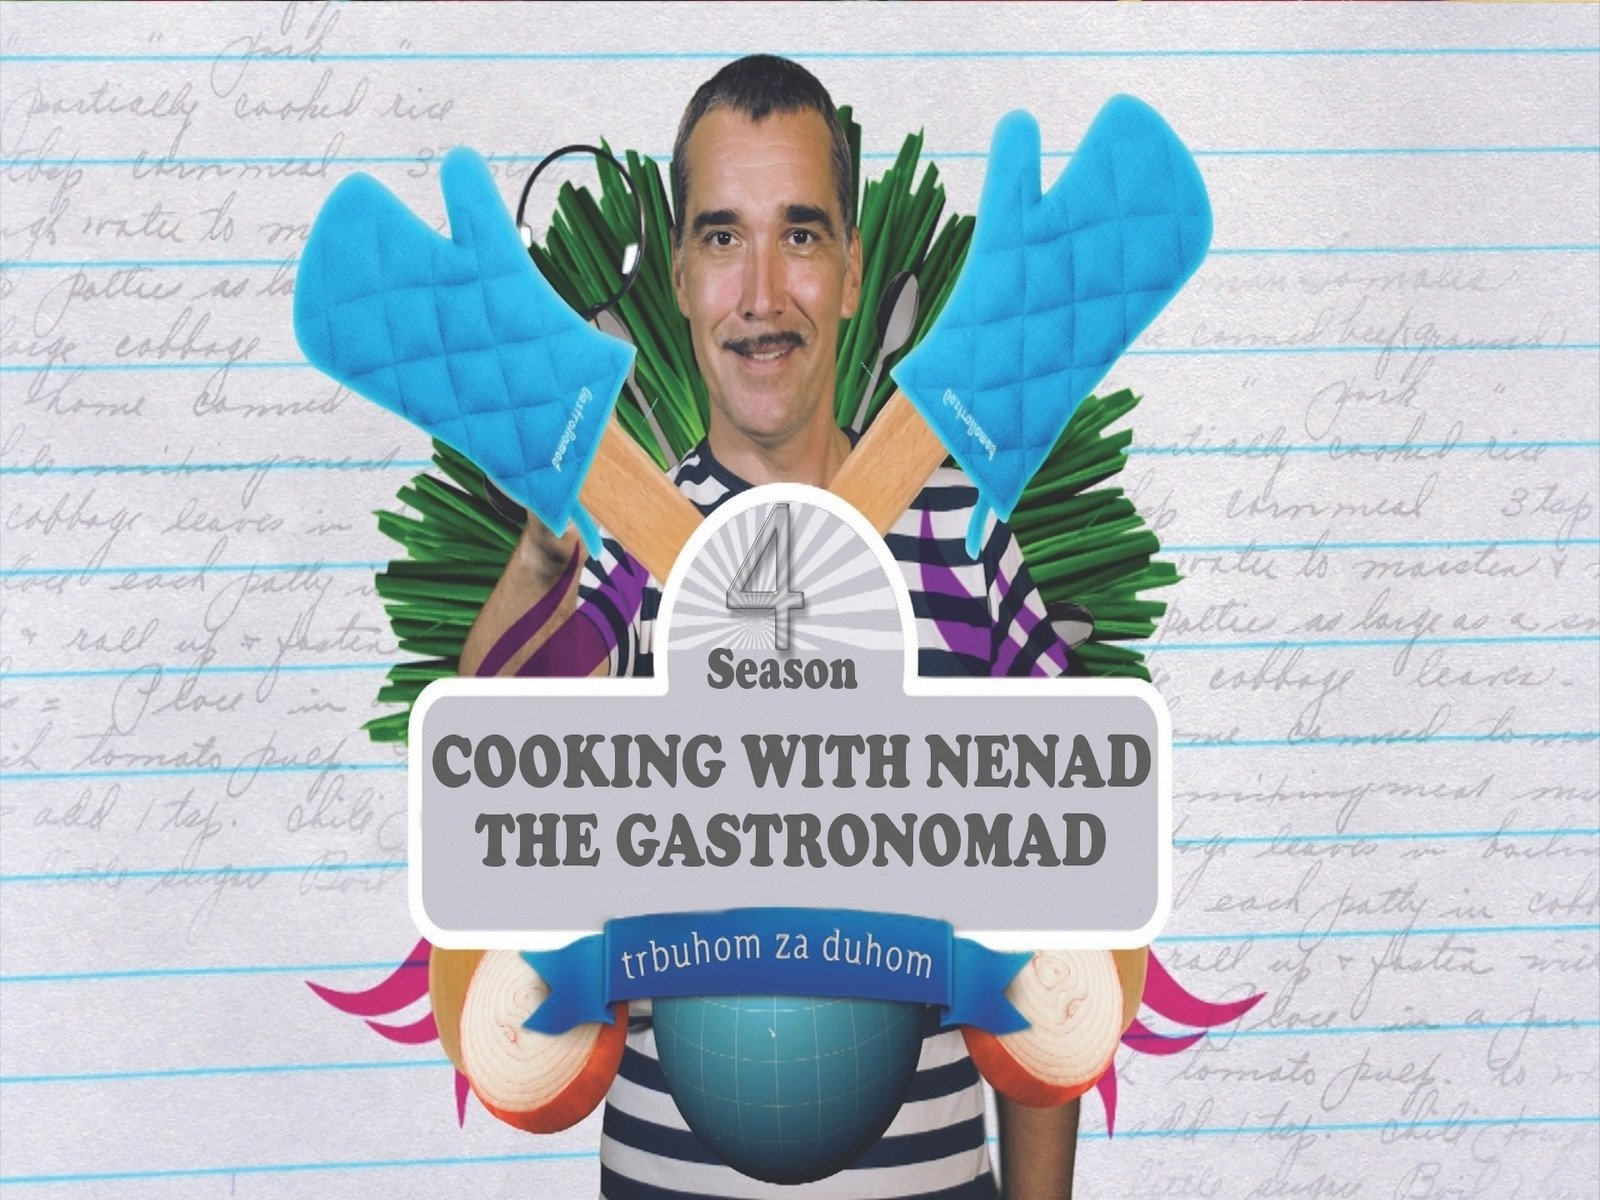 Cooking with Nenad the Gastronomad - Season 4